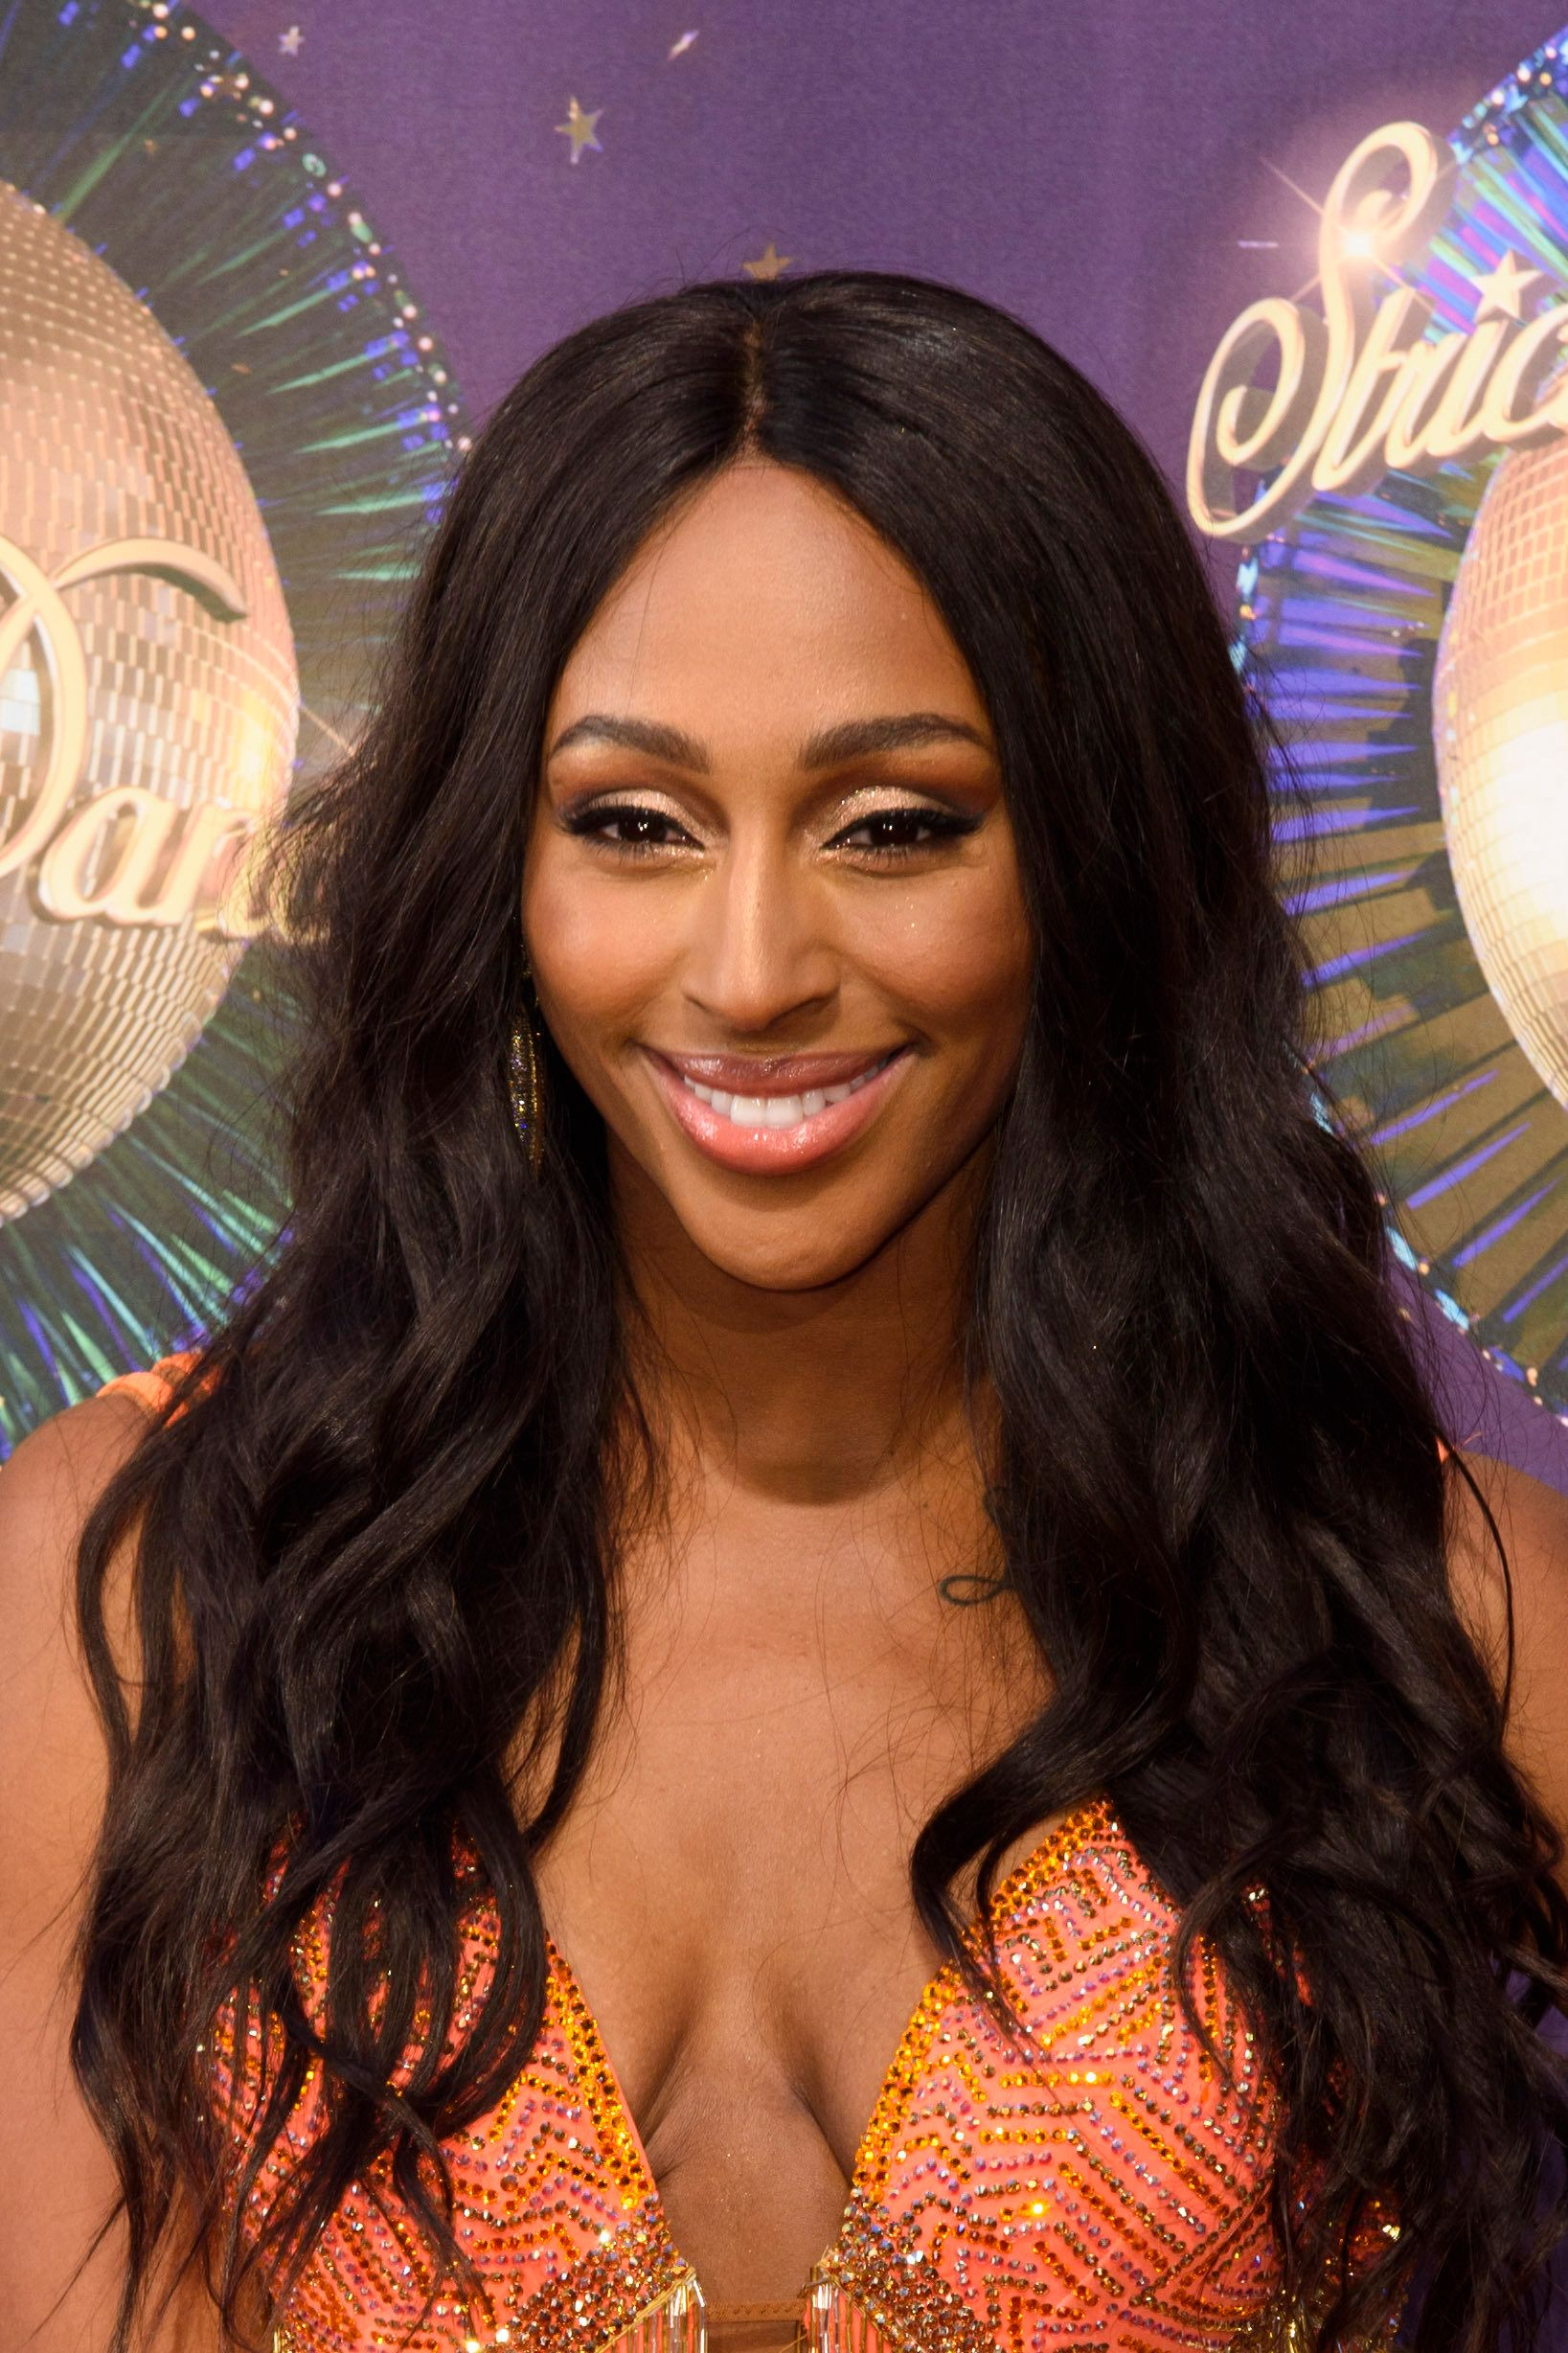 Alexandra Burke Says She's Now Too 'Self-Conscious' To Show Real Emotions On